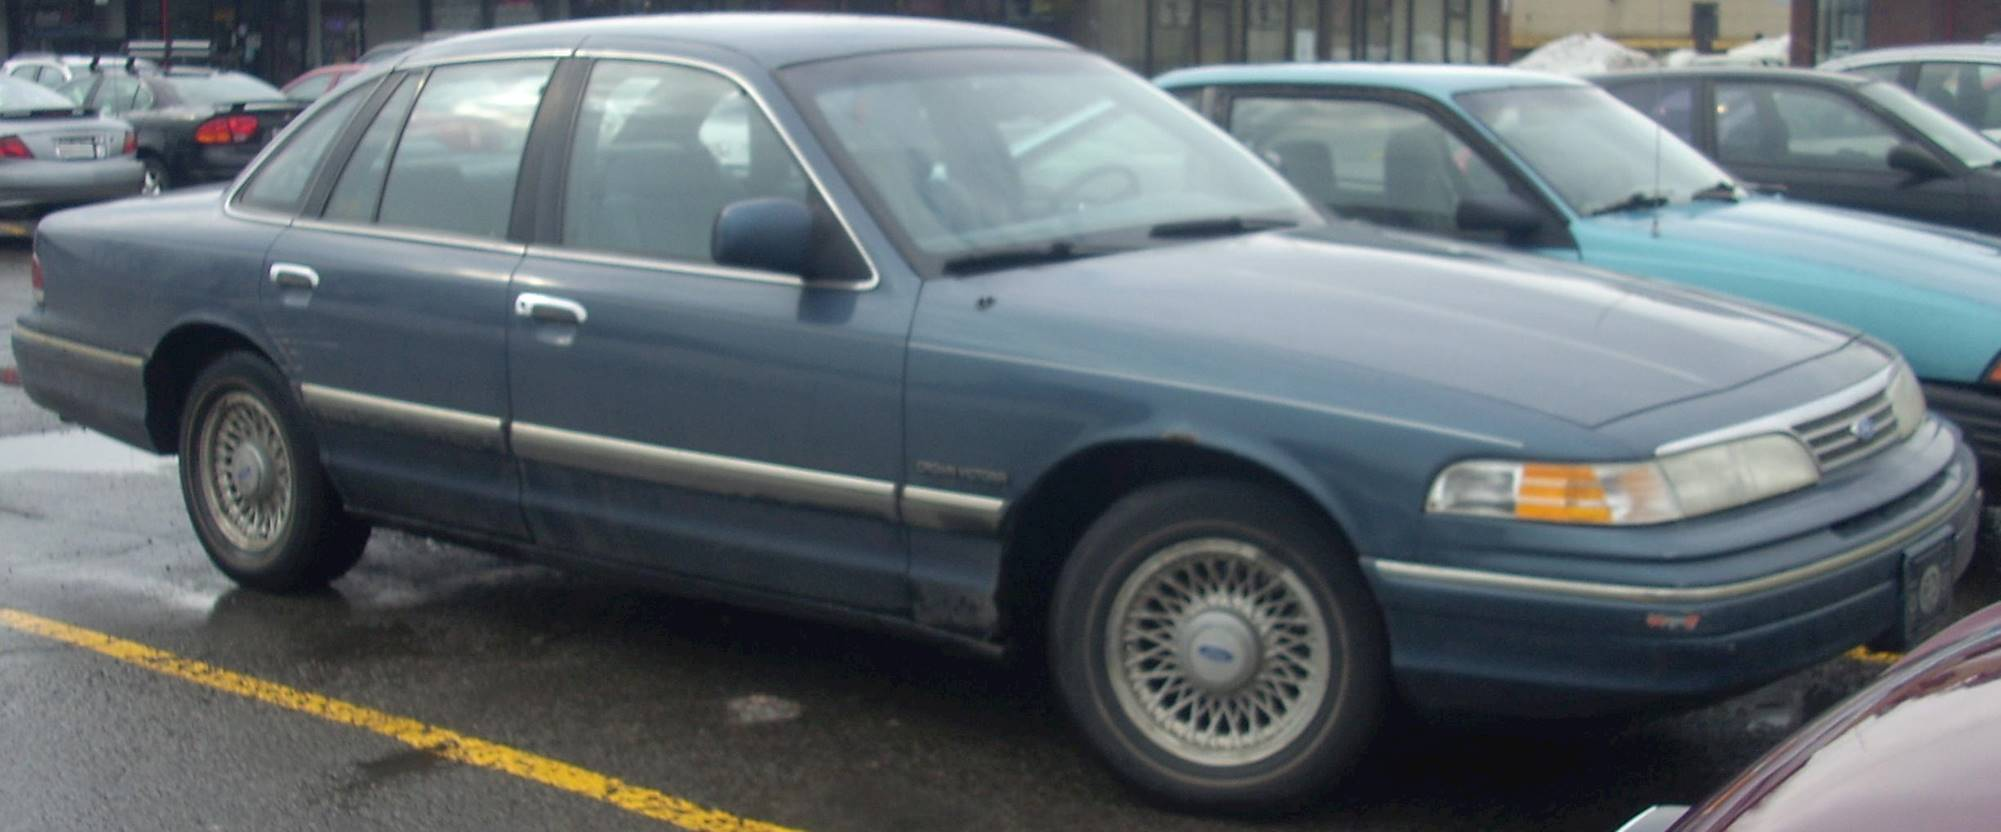 owner manual 1992 ford taurus lx wagon